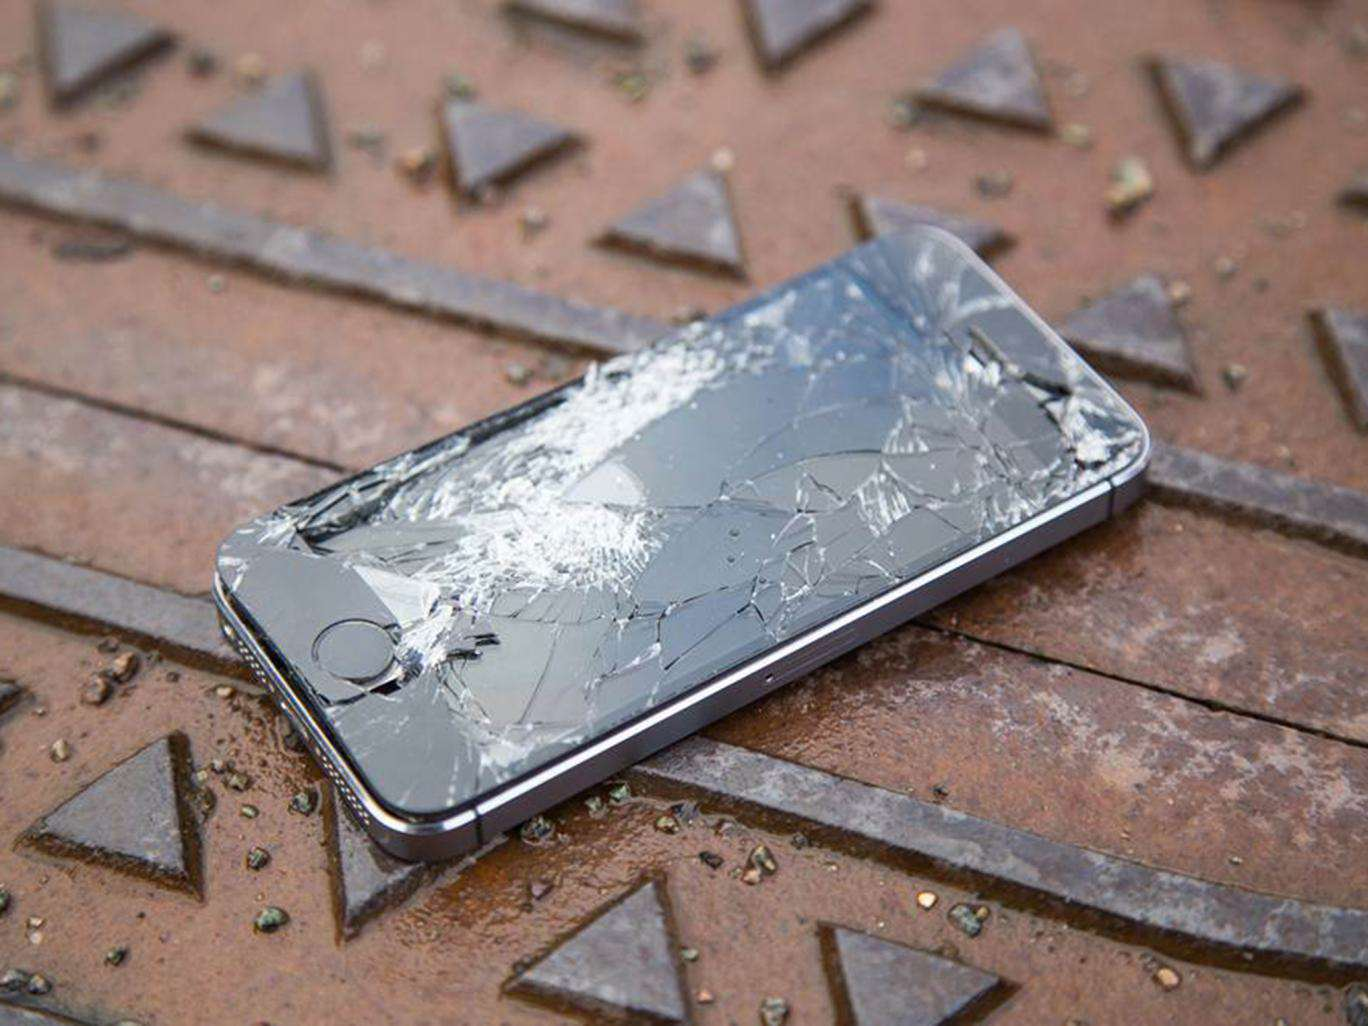 This Latest iPhone Bug Could Completely Destroy Your Device Smashed broken iphone